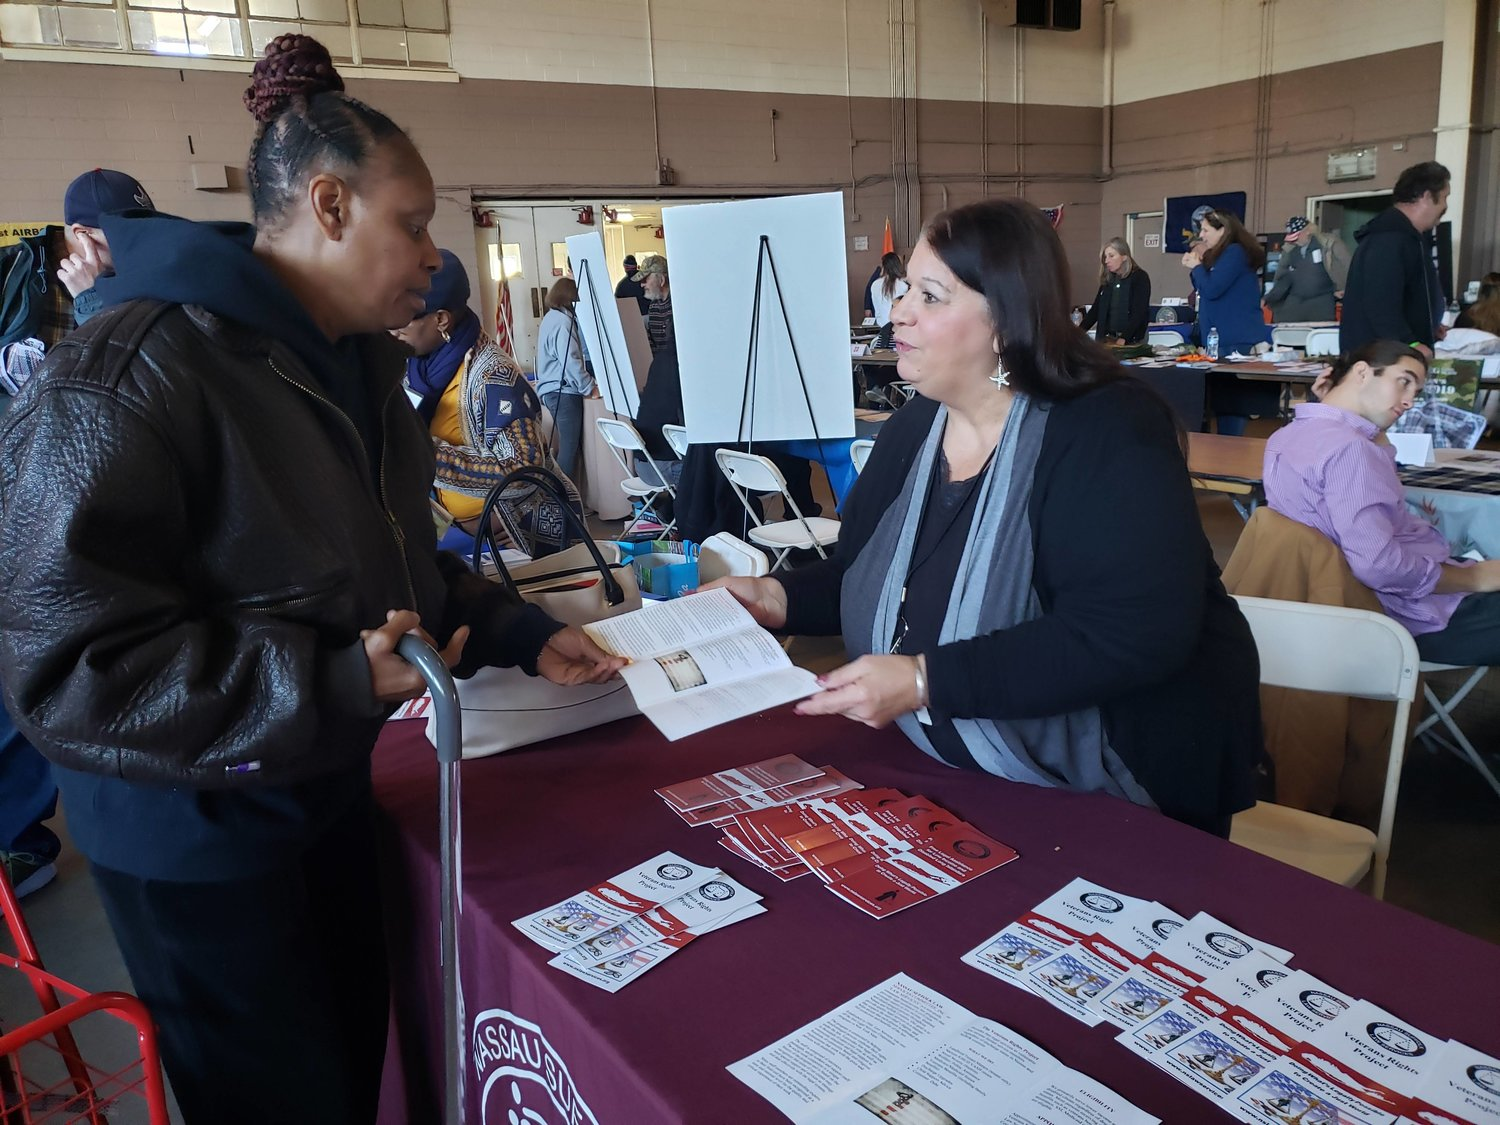 Navy veteran and Hempstead resident Gwendolyn Watson sought legal information from Dolores Scalfani a paralegal with Nassau Suffolk Law Services during the Stand Down.